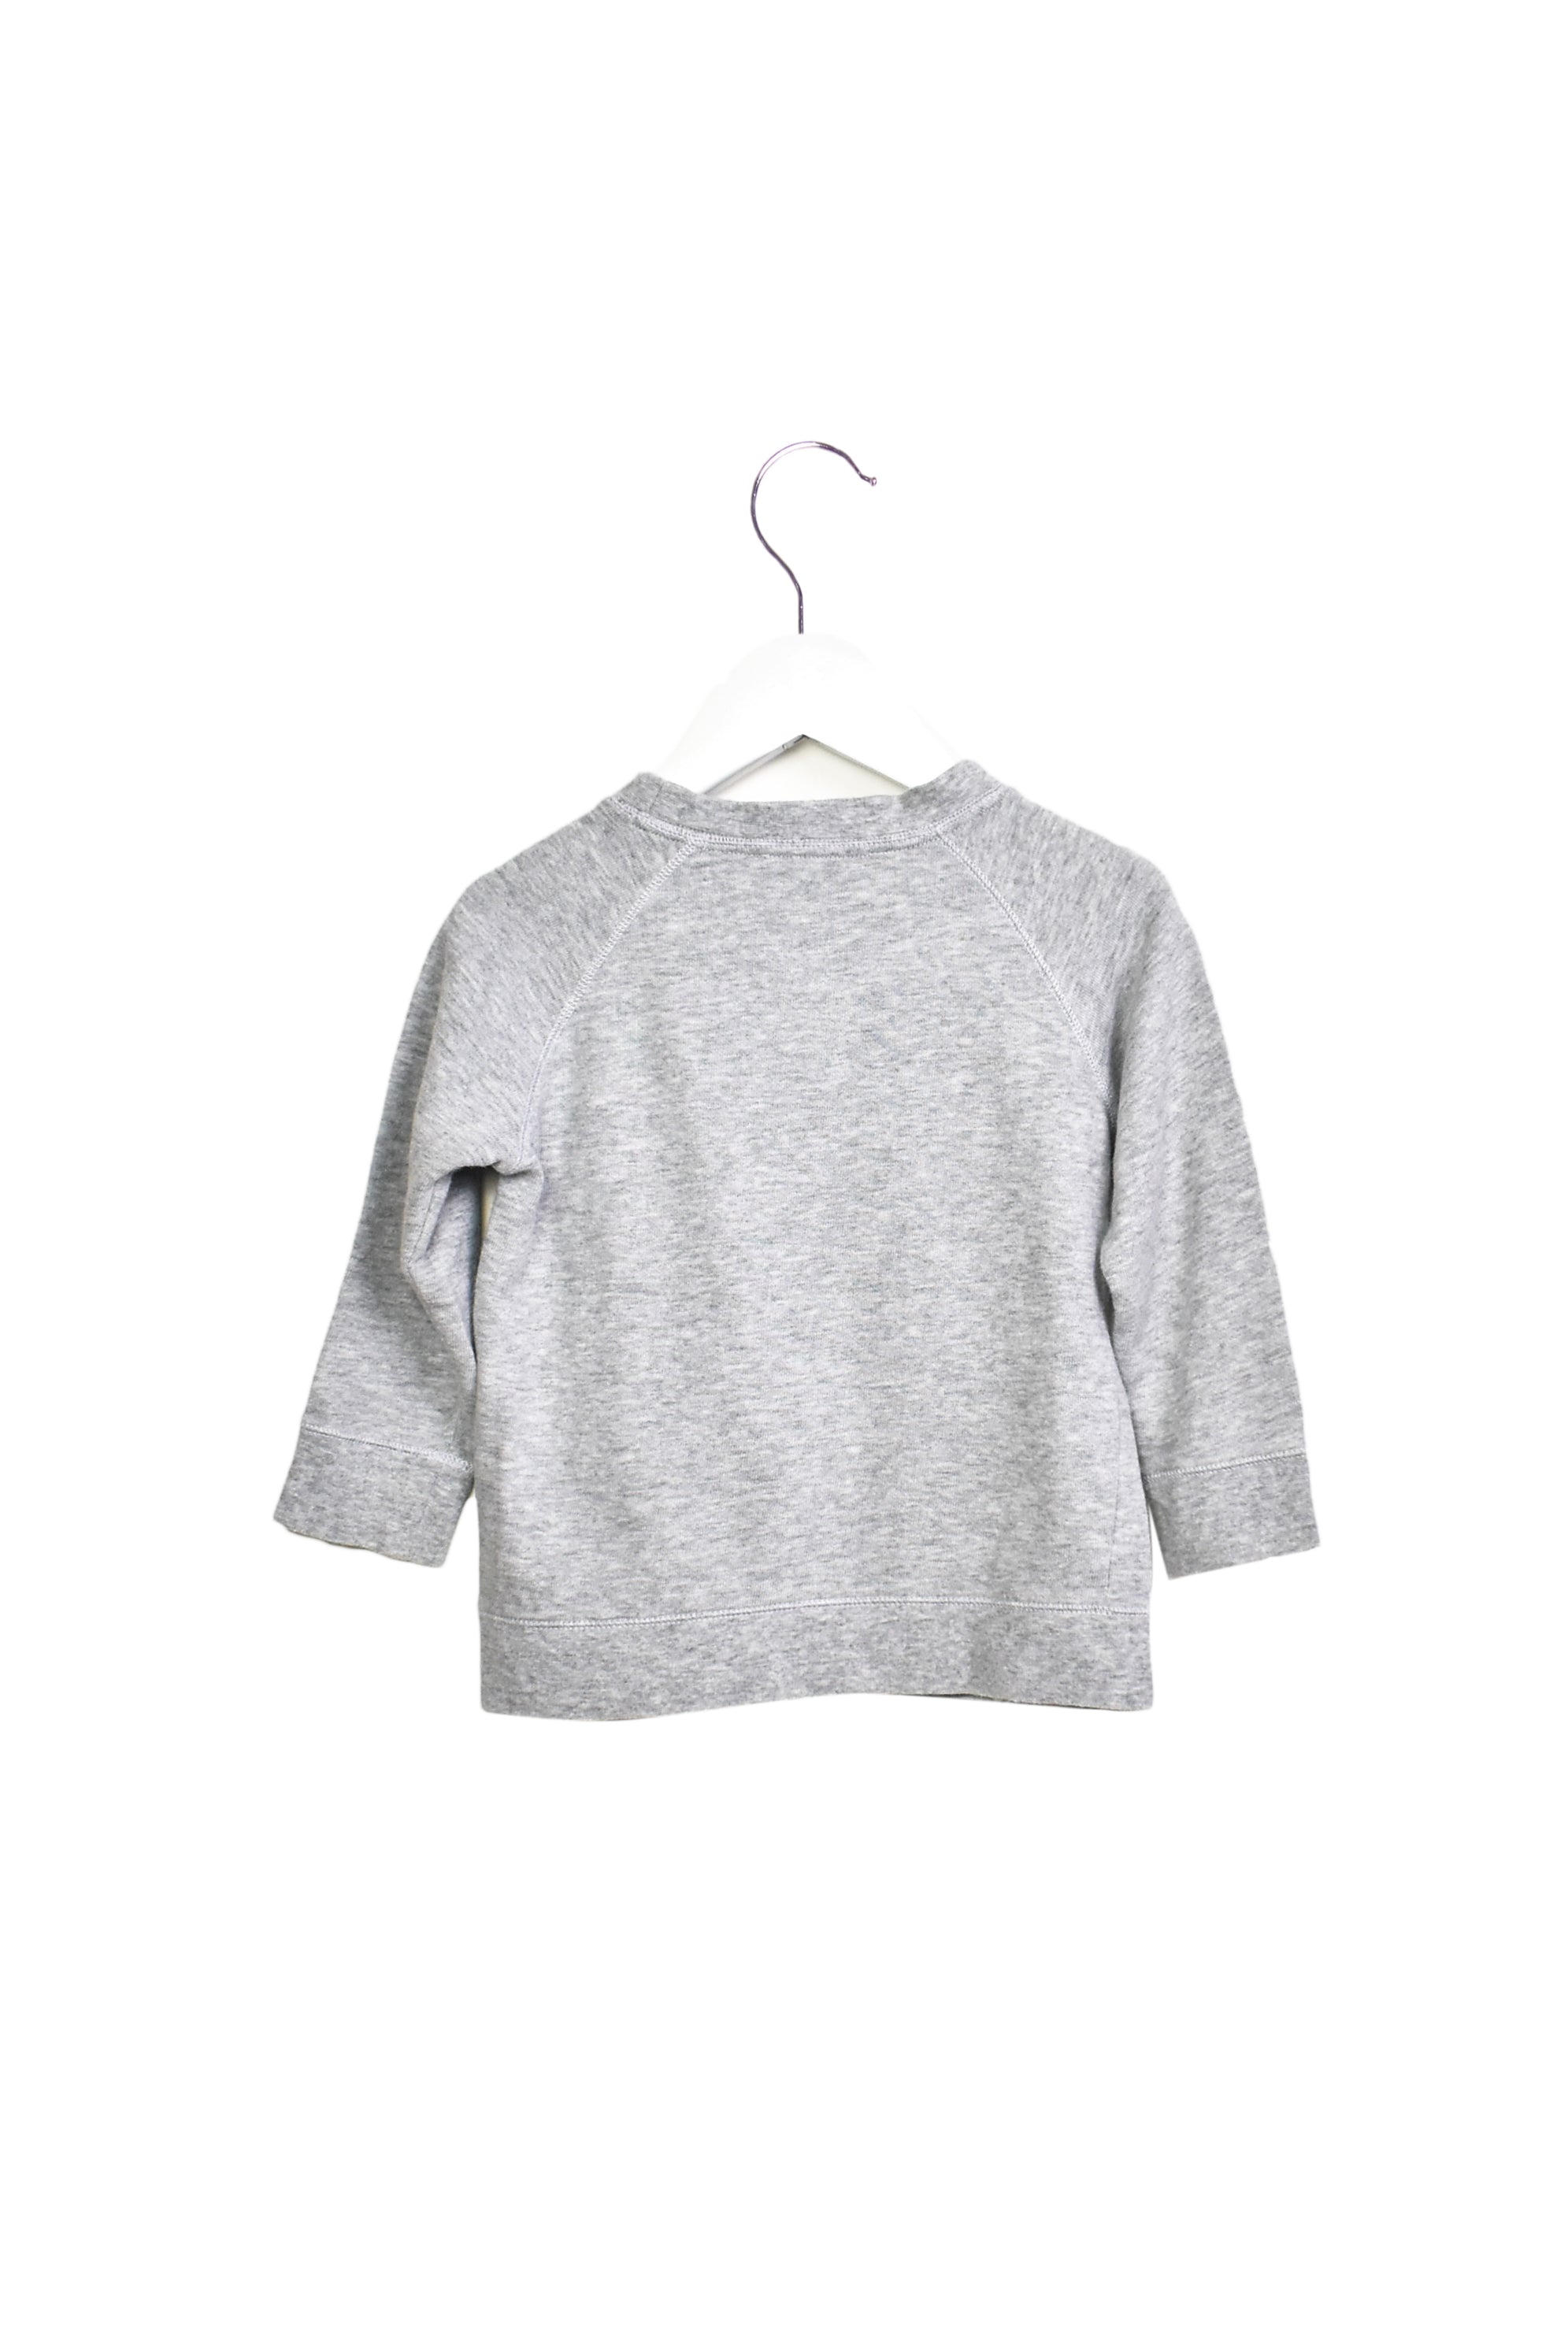 10014880 Stella McCartney Kids ~ Sweatshirt 2T at Retykle